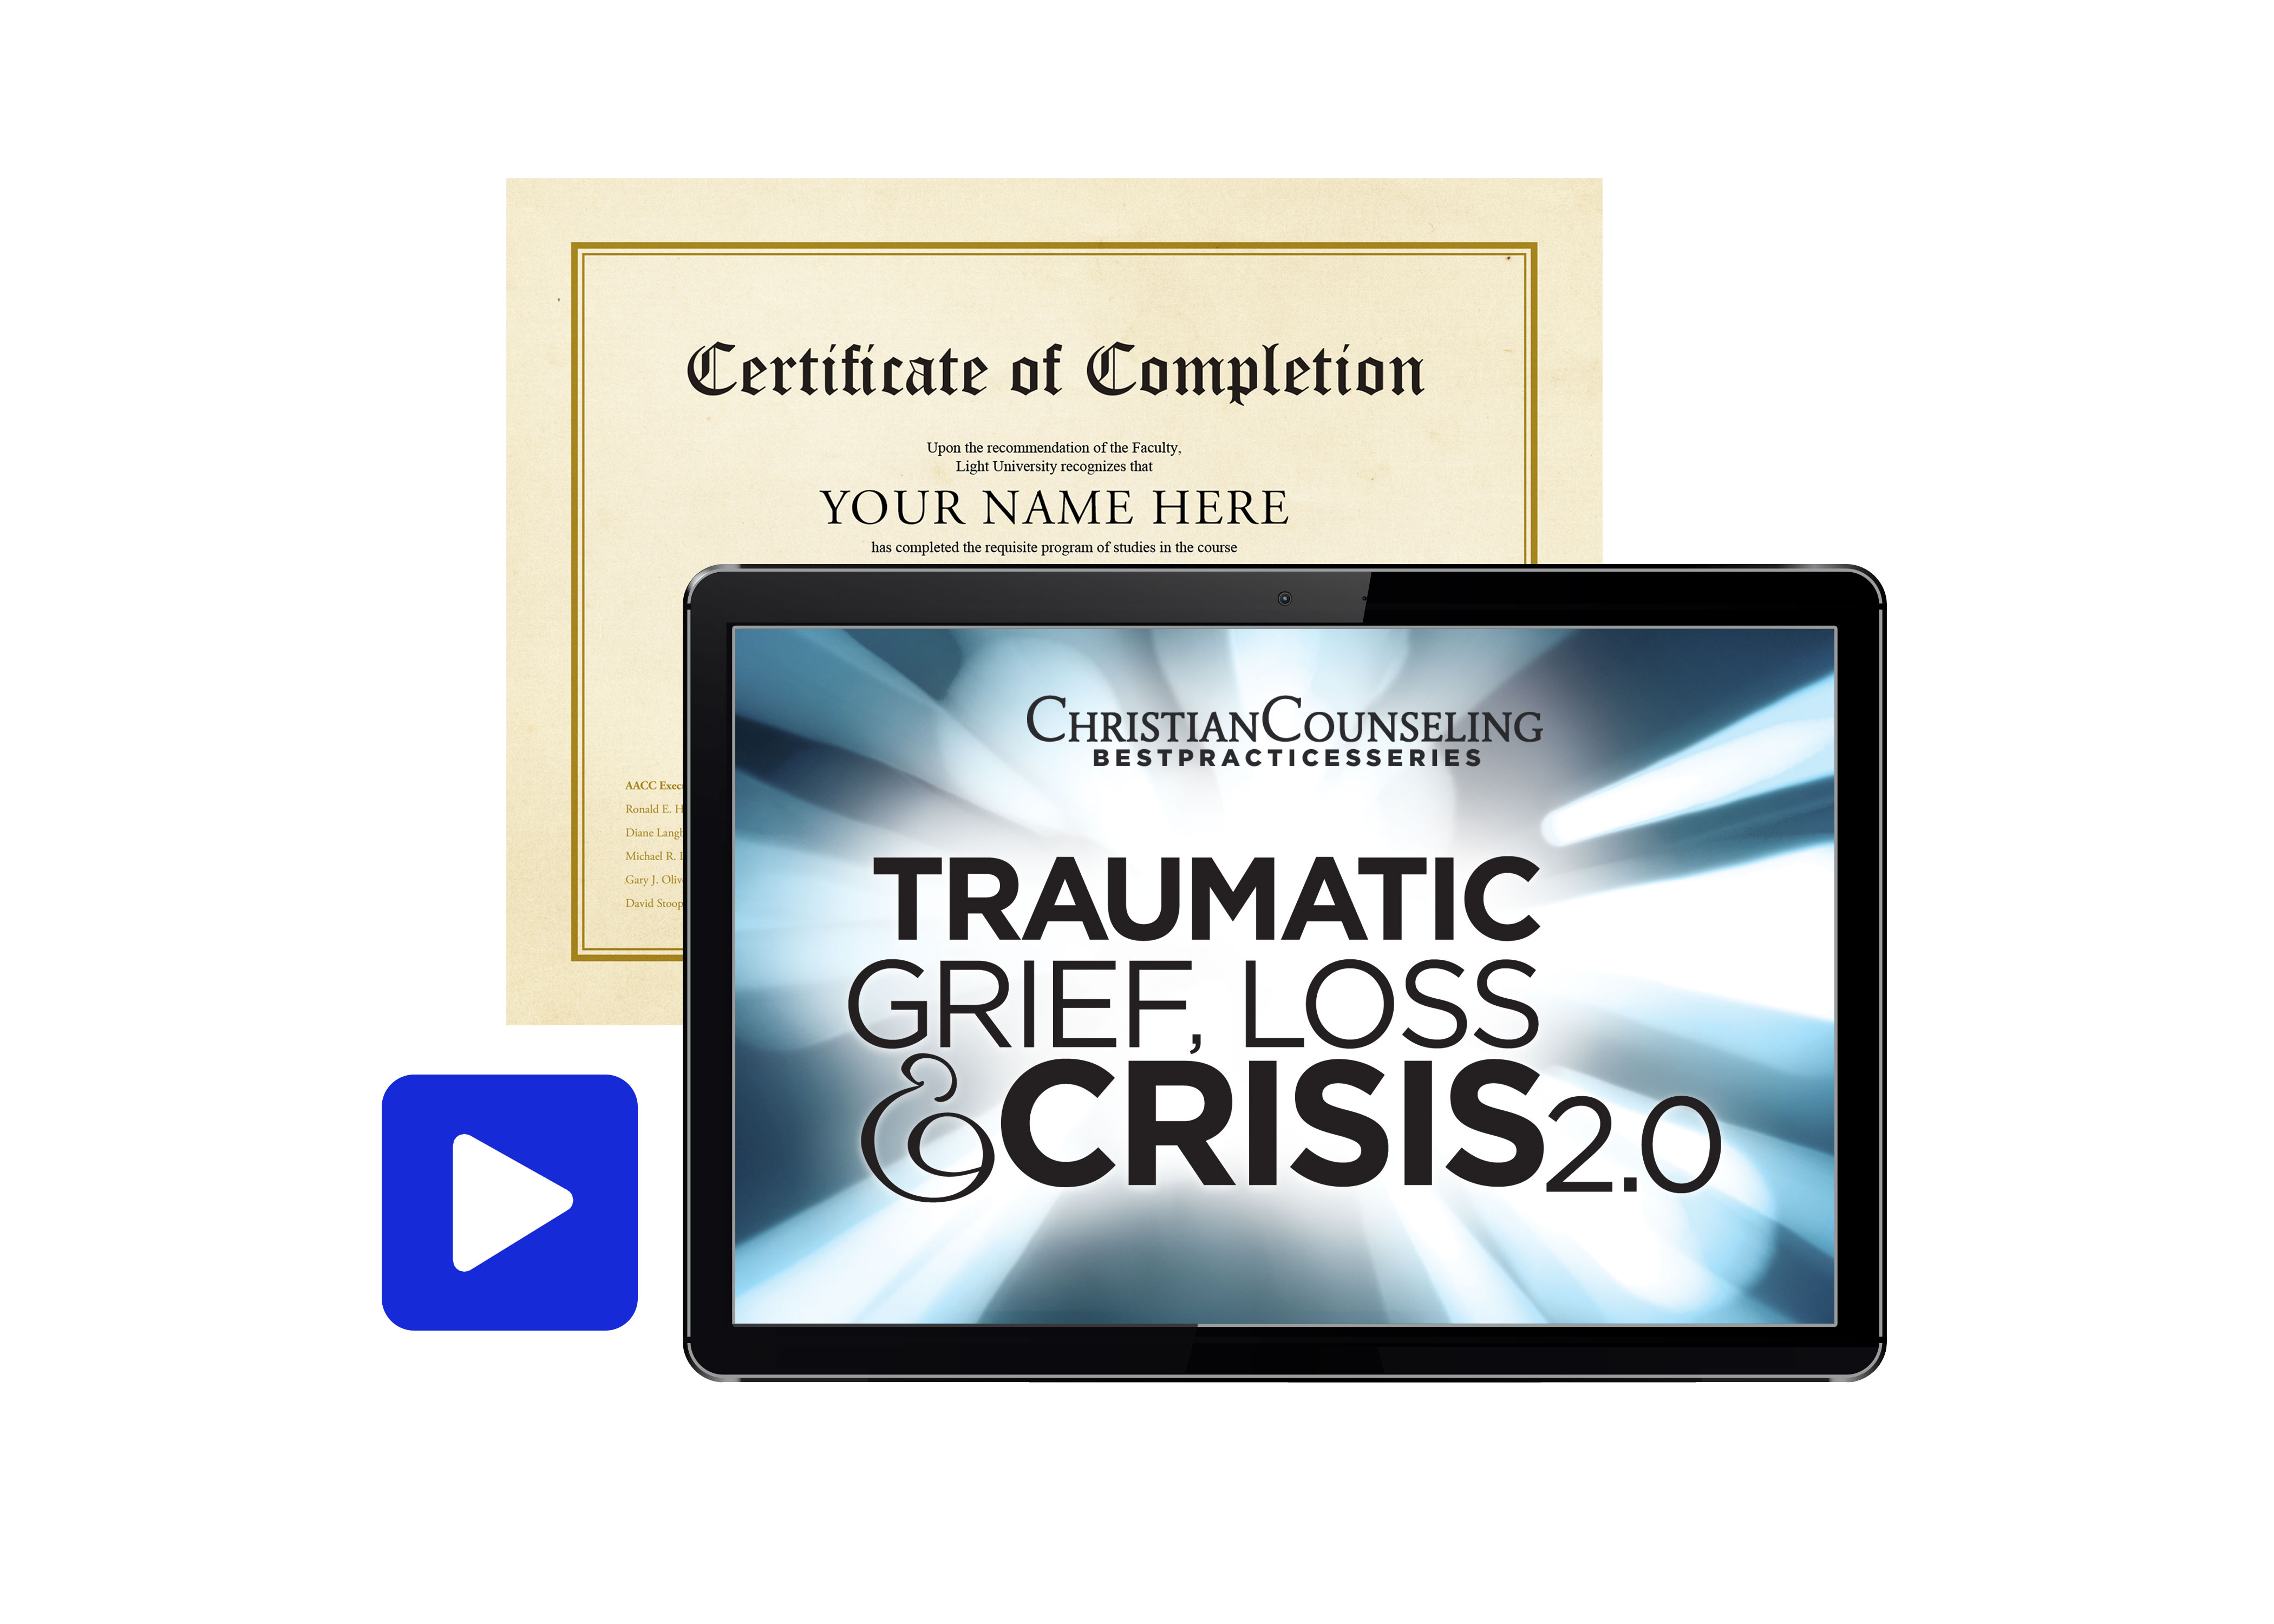 Traumatic Grief, Loss and Crisis 2.0